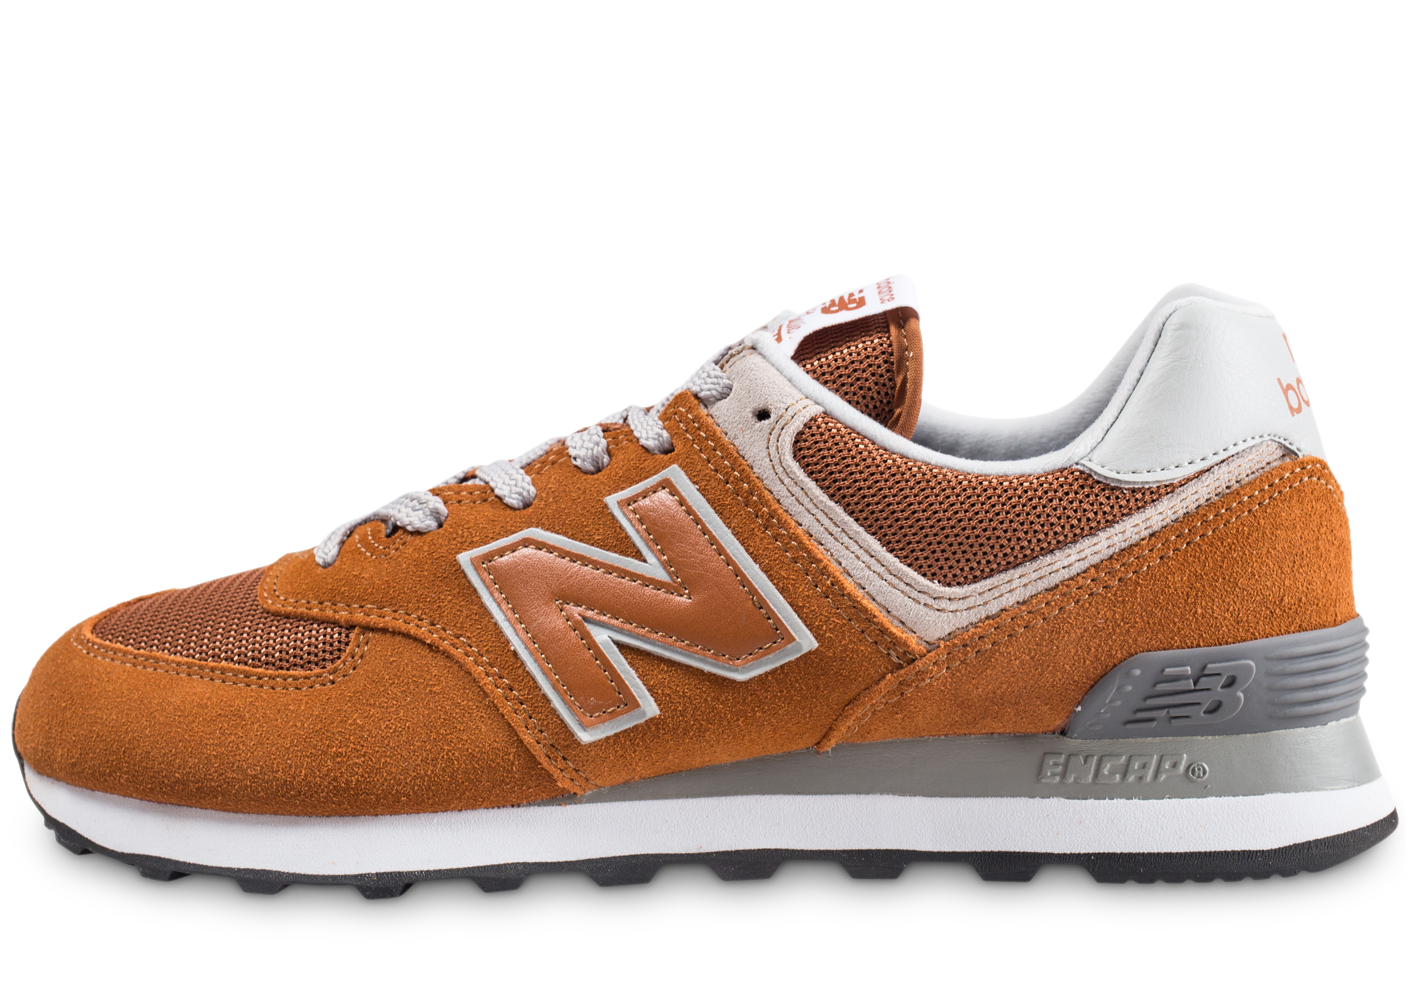 New Balance Homme Ml574epe Orange Et Gris Baskets